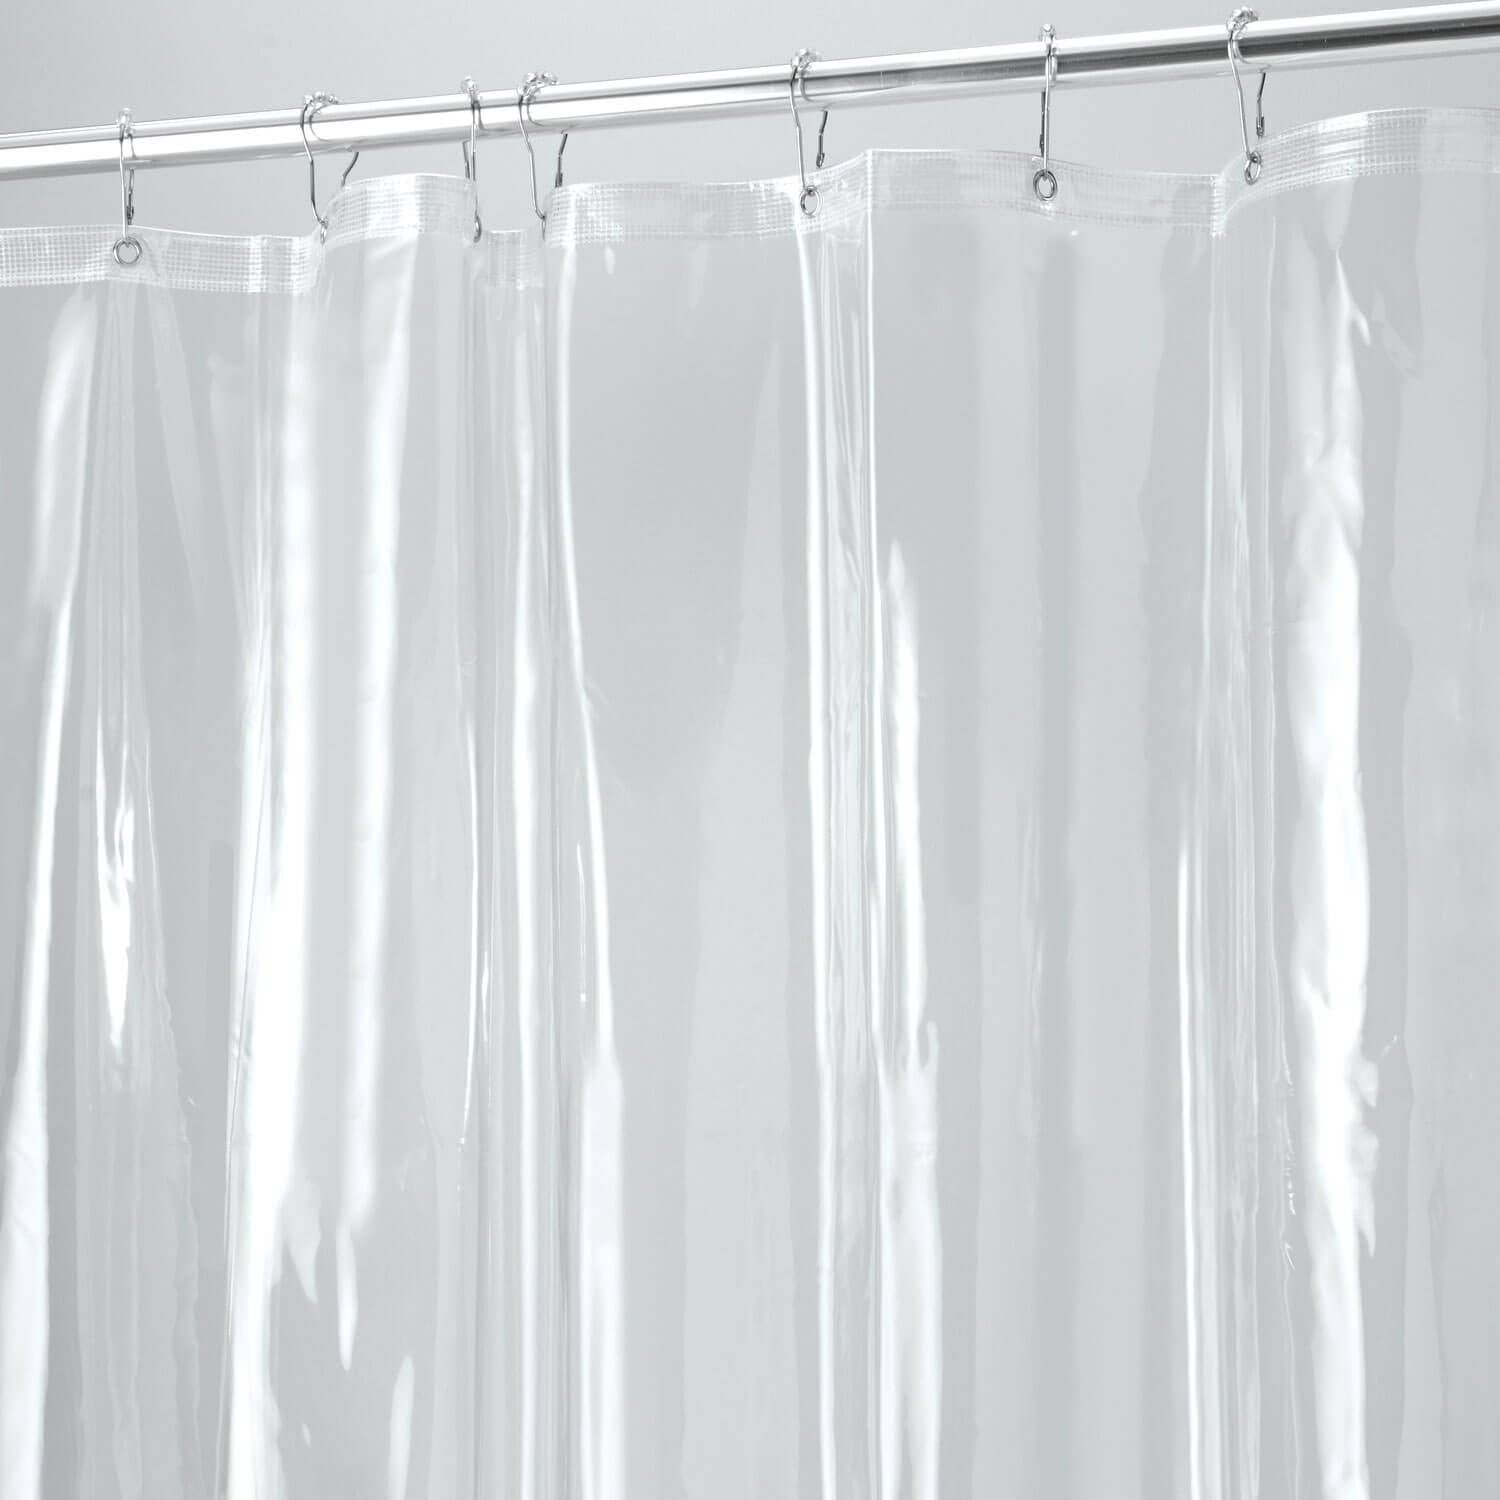 Vinyl Shower Curtain Liner– Dormify